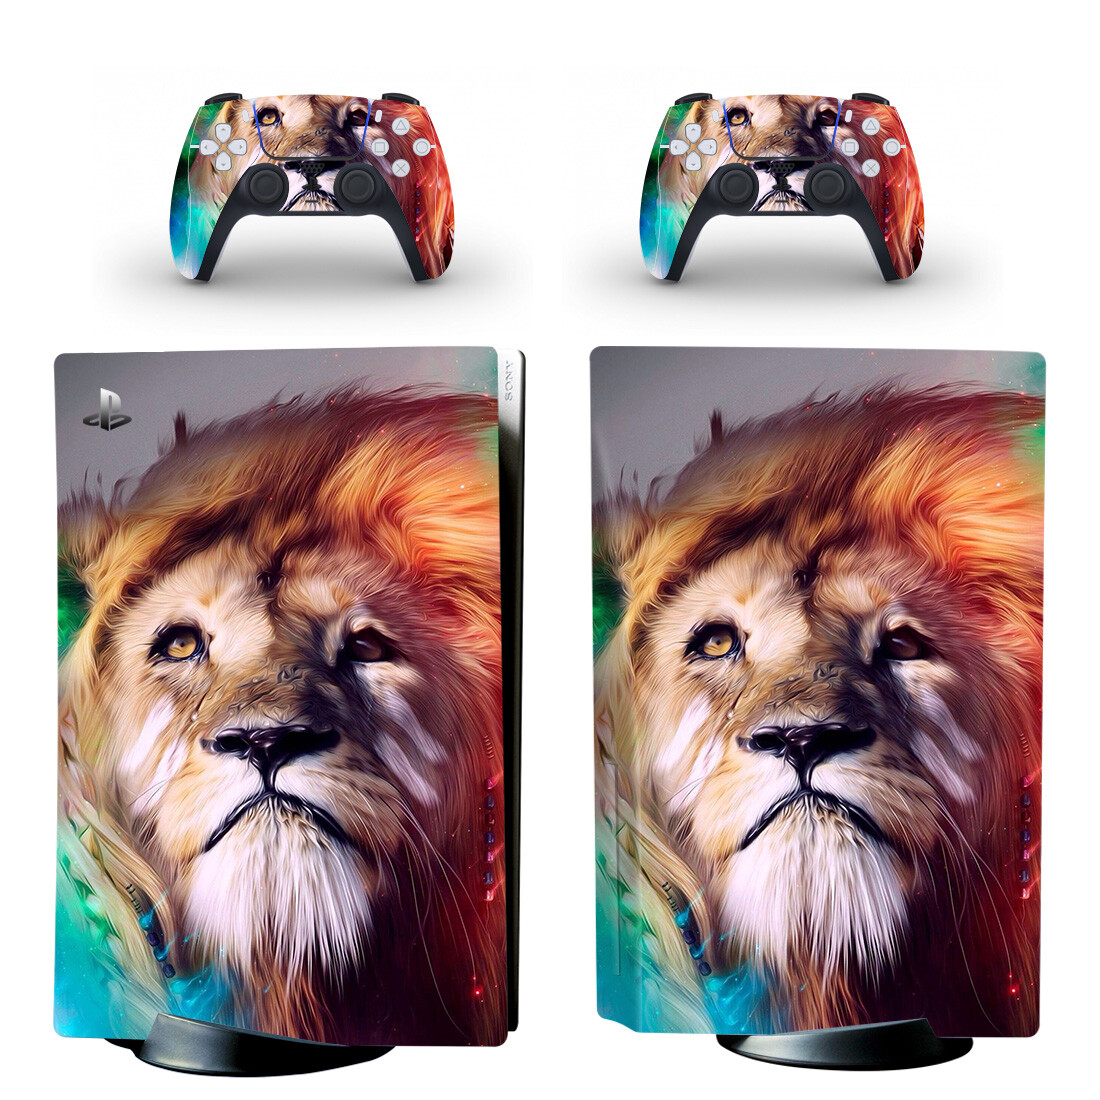 Lion Painting Skin Sticker For PS5 Skin And Controllers